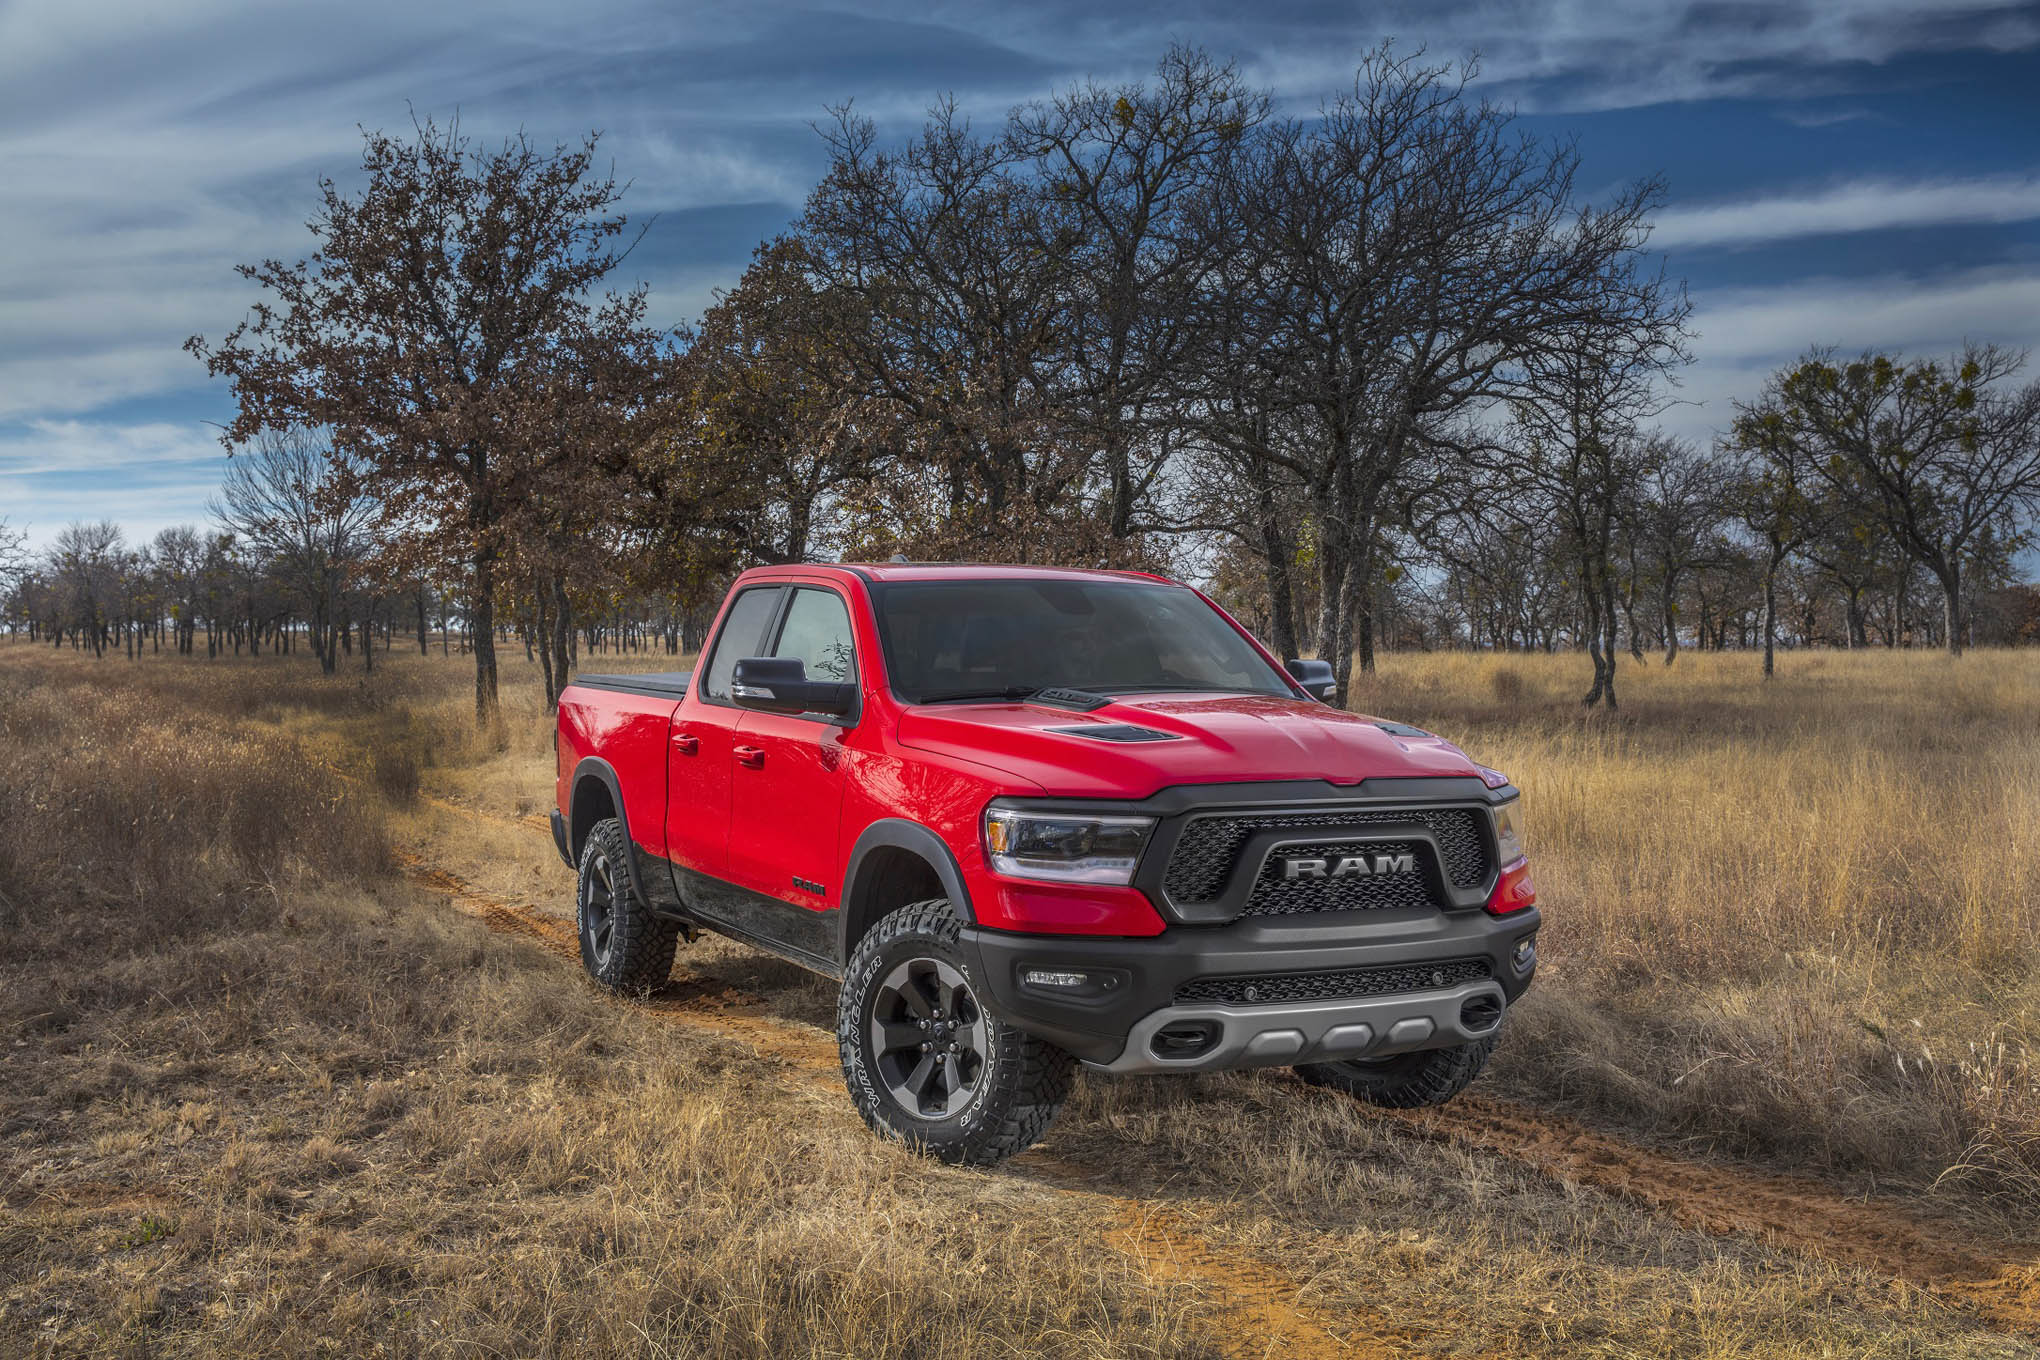 017 ecodiesel powered 2020 ram rebel front view